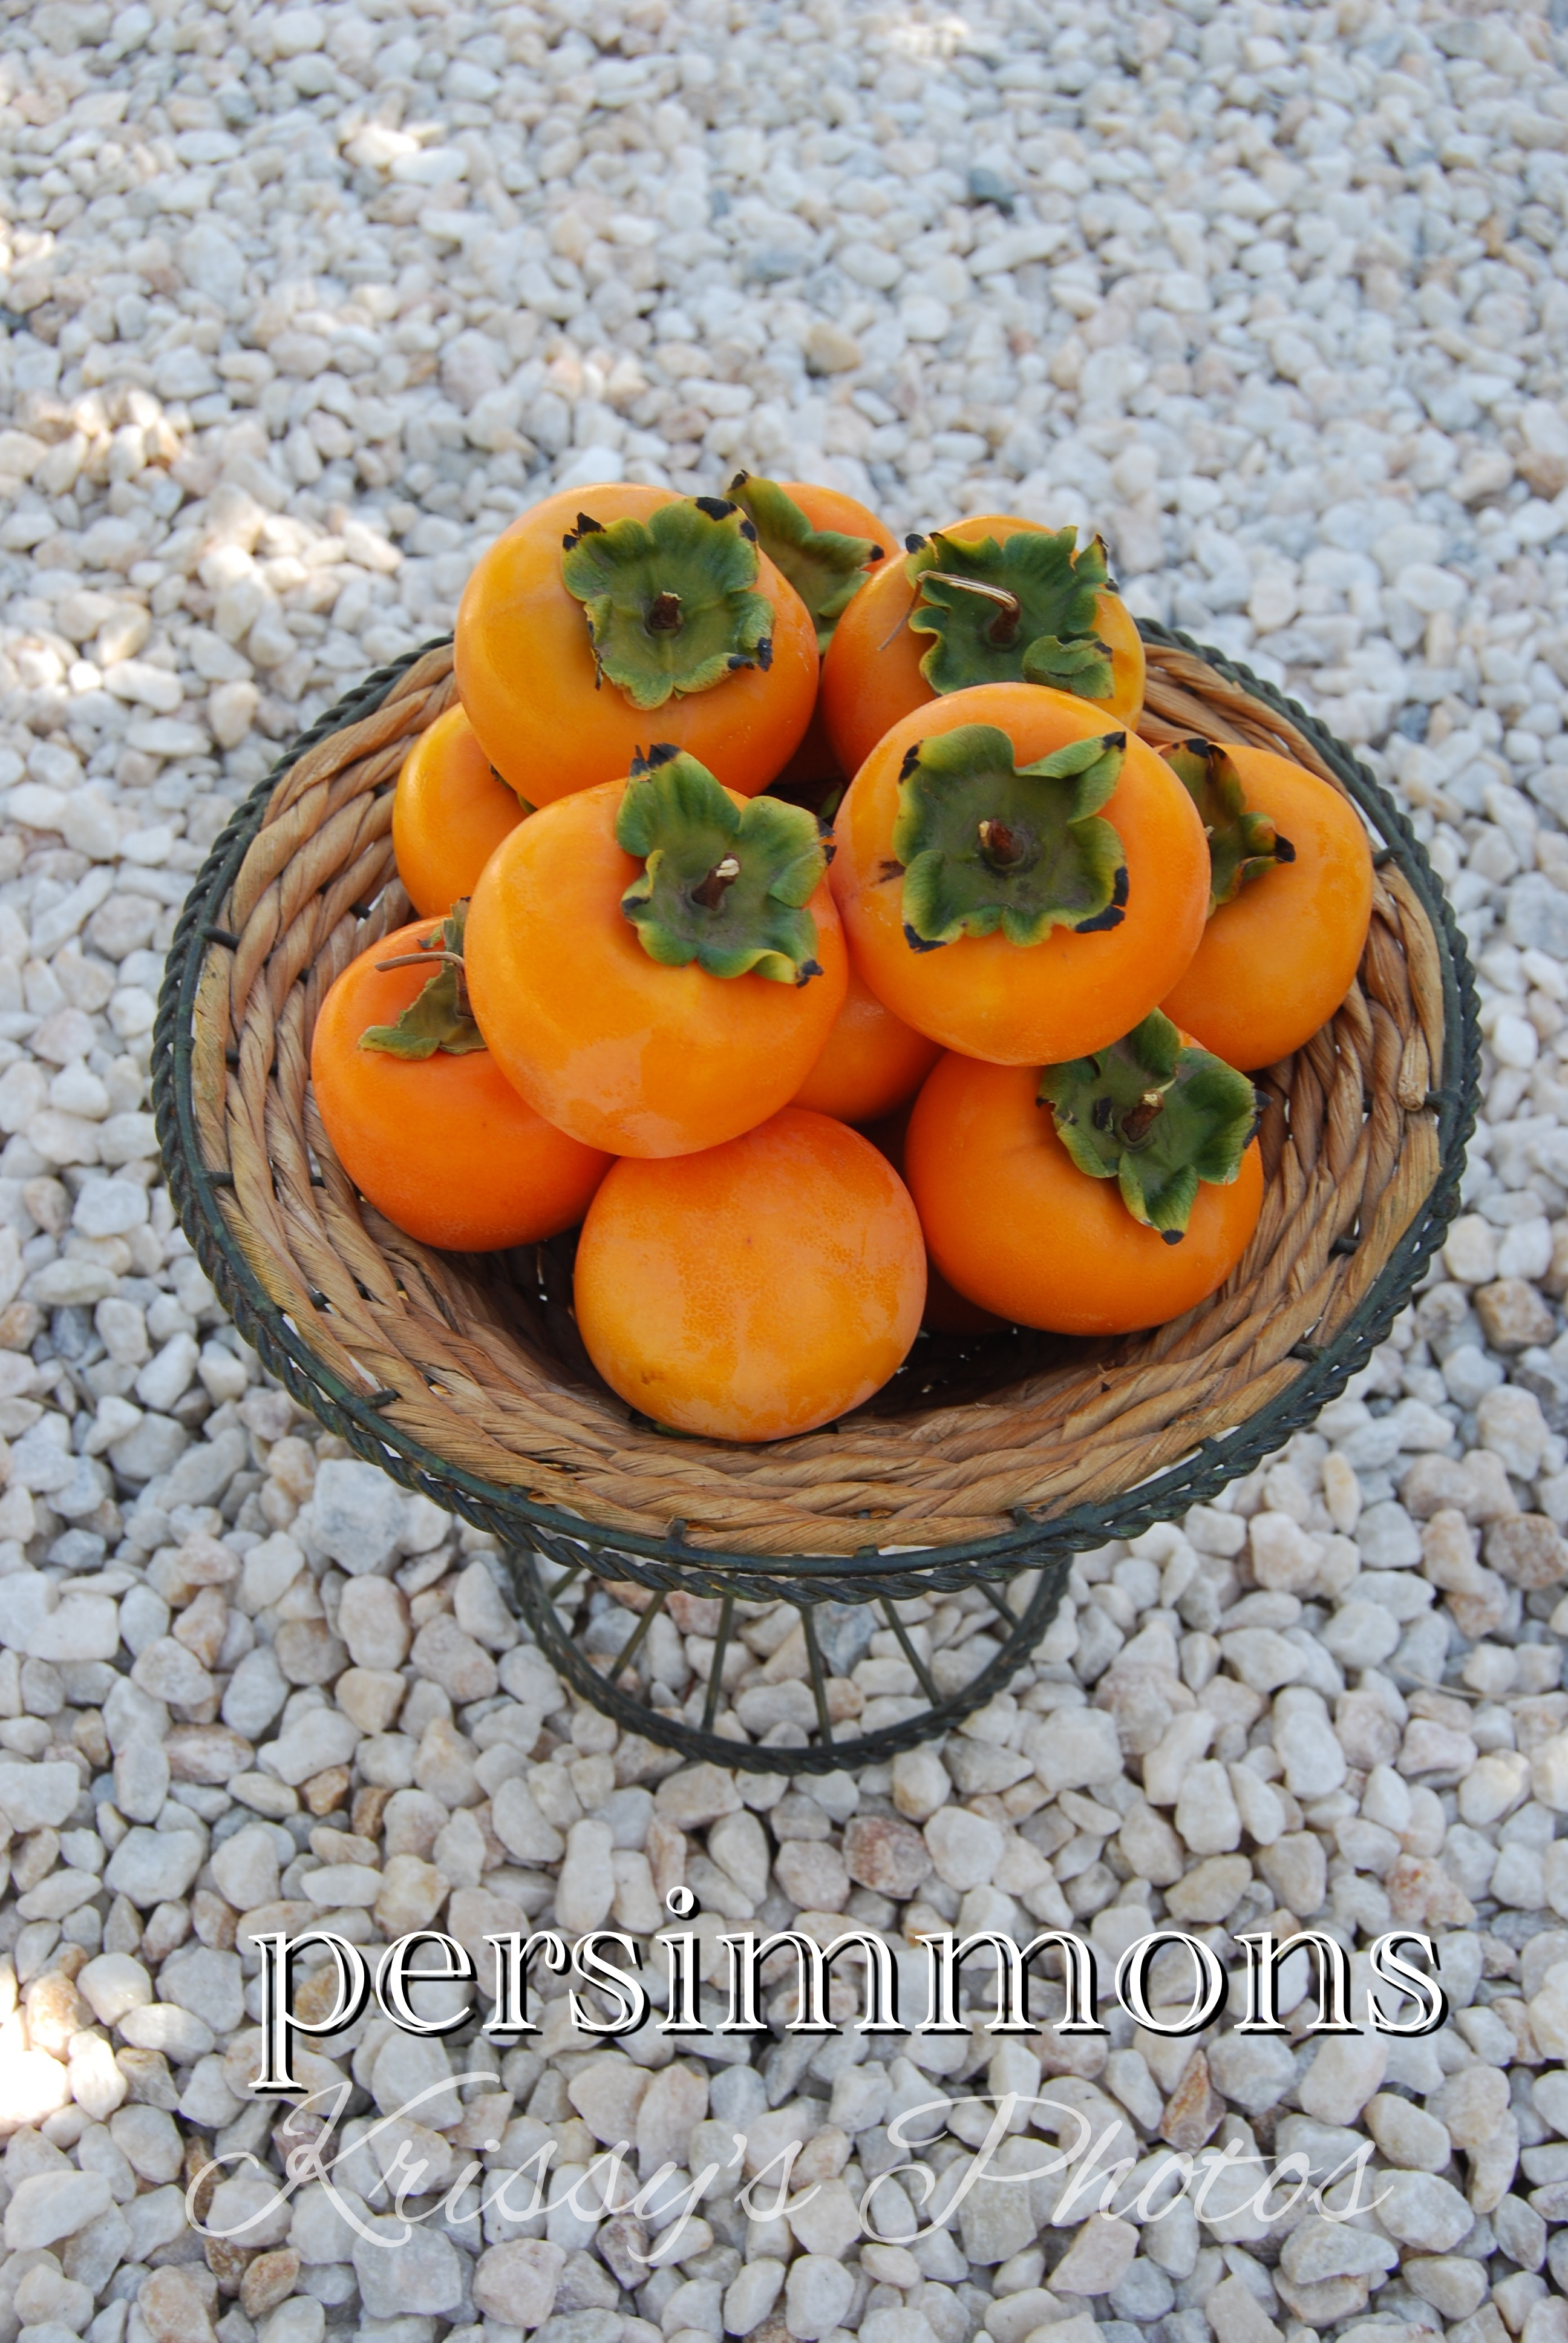 Particular Ion Just Fruits Persimmon Exotics Nursery Review Just Fruits Prosciutto Exotics Blueberry houzz-02 Just Fruits And Exotics